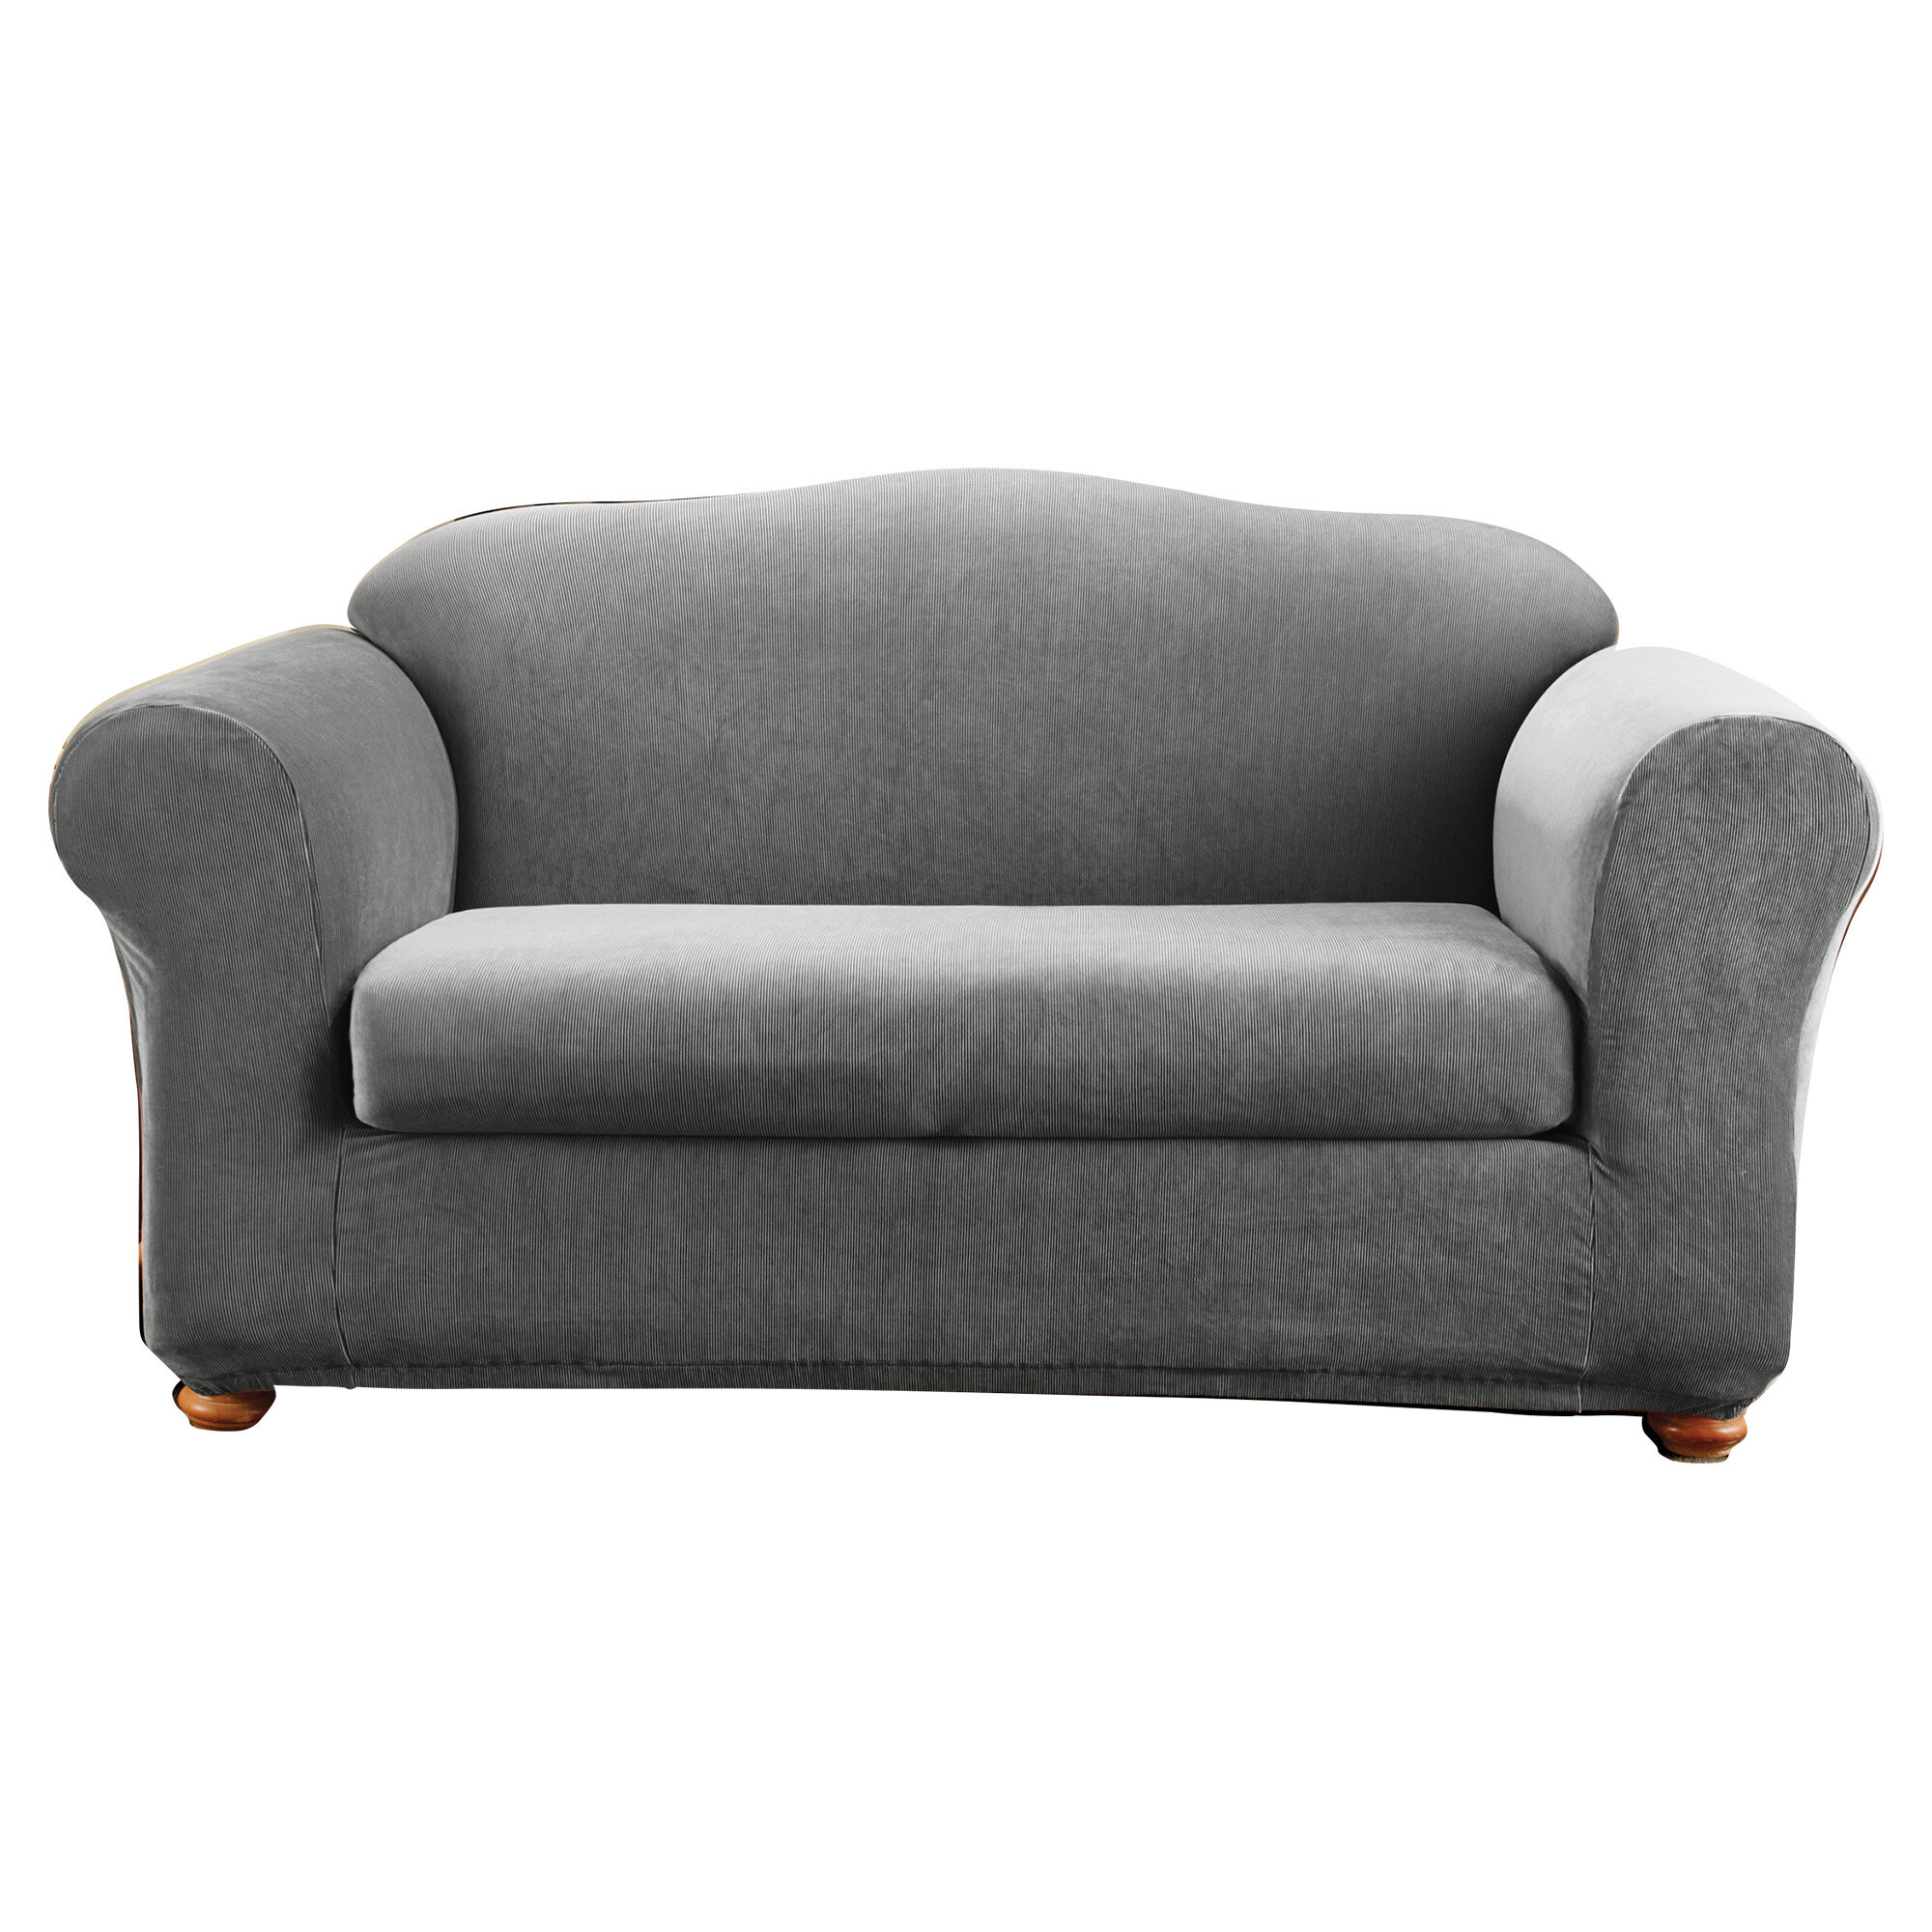 grey set dark slipcover linen and modern pictures loveseat in sofa gray ideas dreaded slipcoverdark ashmont